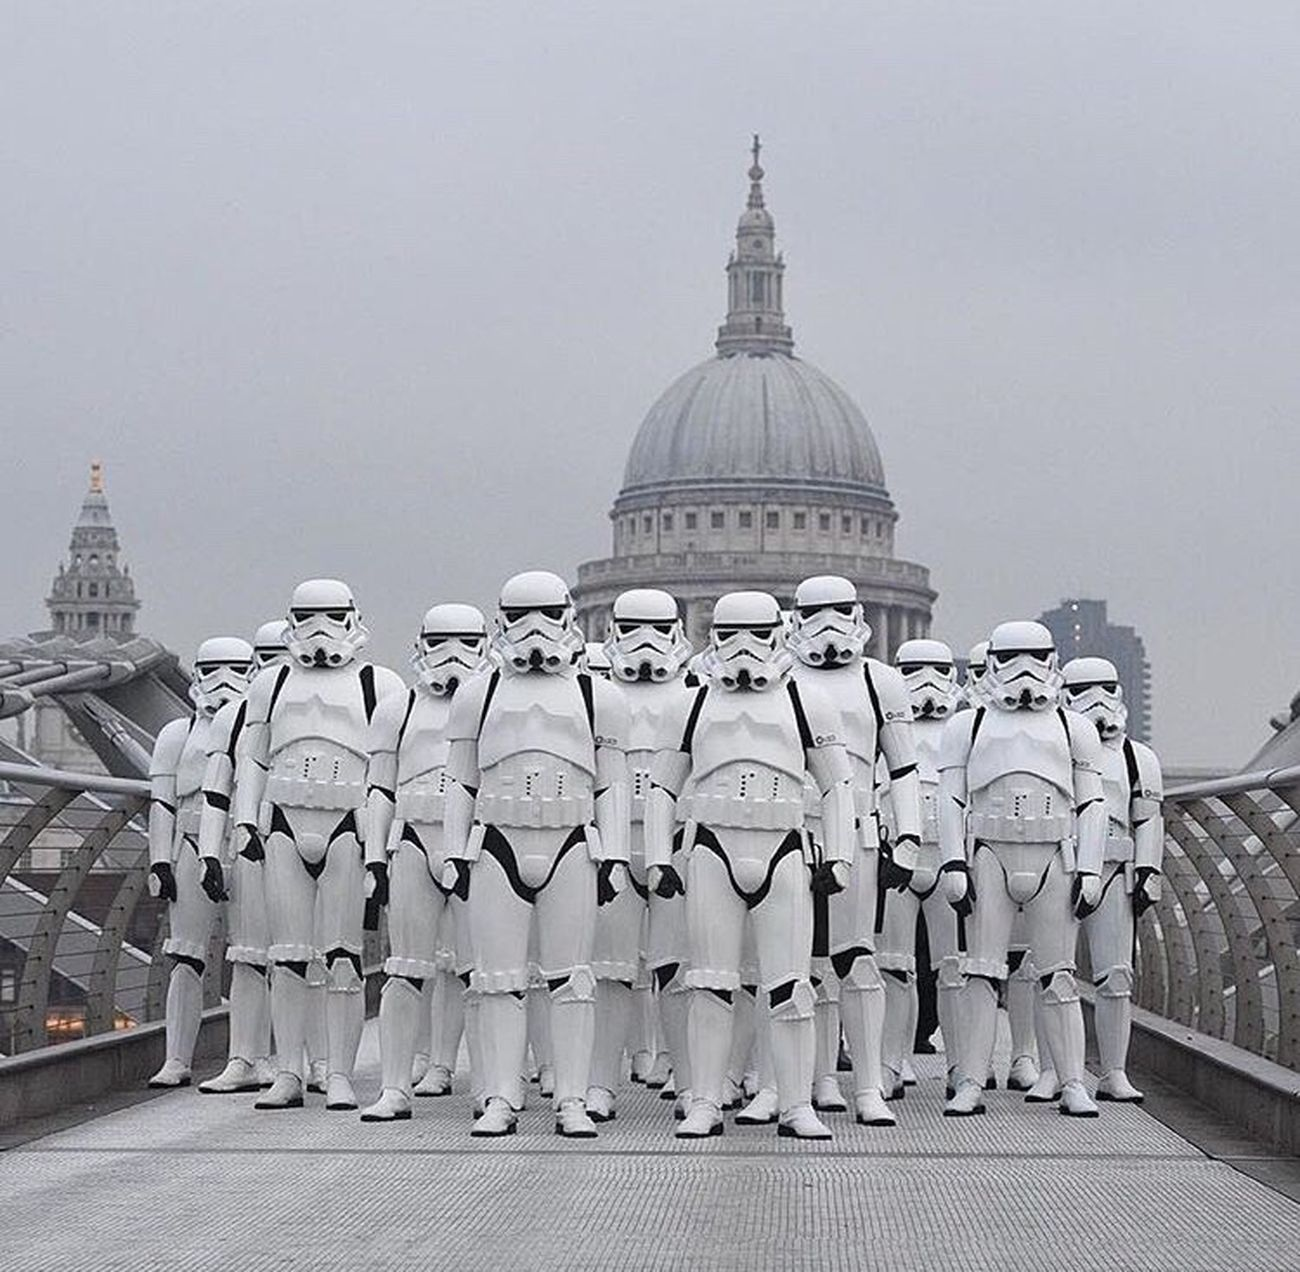 Stormtroopers Envading London Dome Architecture Outdoors Millenium Bridge Capturingthosemoments Cityscape Close-up BeastModeON Taking Photos City No People Day Starwarsgeek Rougeone Marchingbunch GoodTimes Building Exterior War MayTheForceBeWithyou